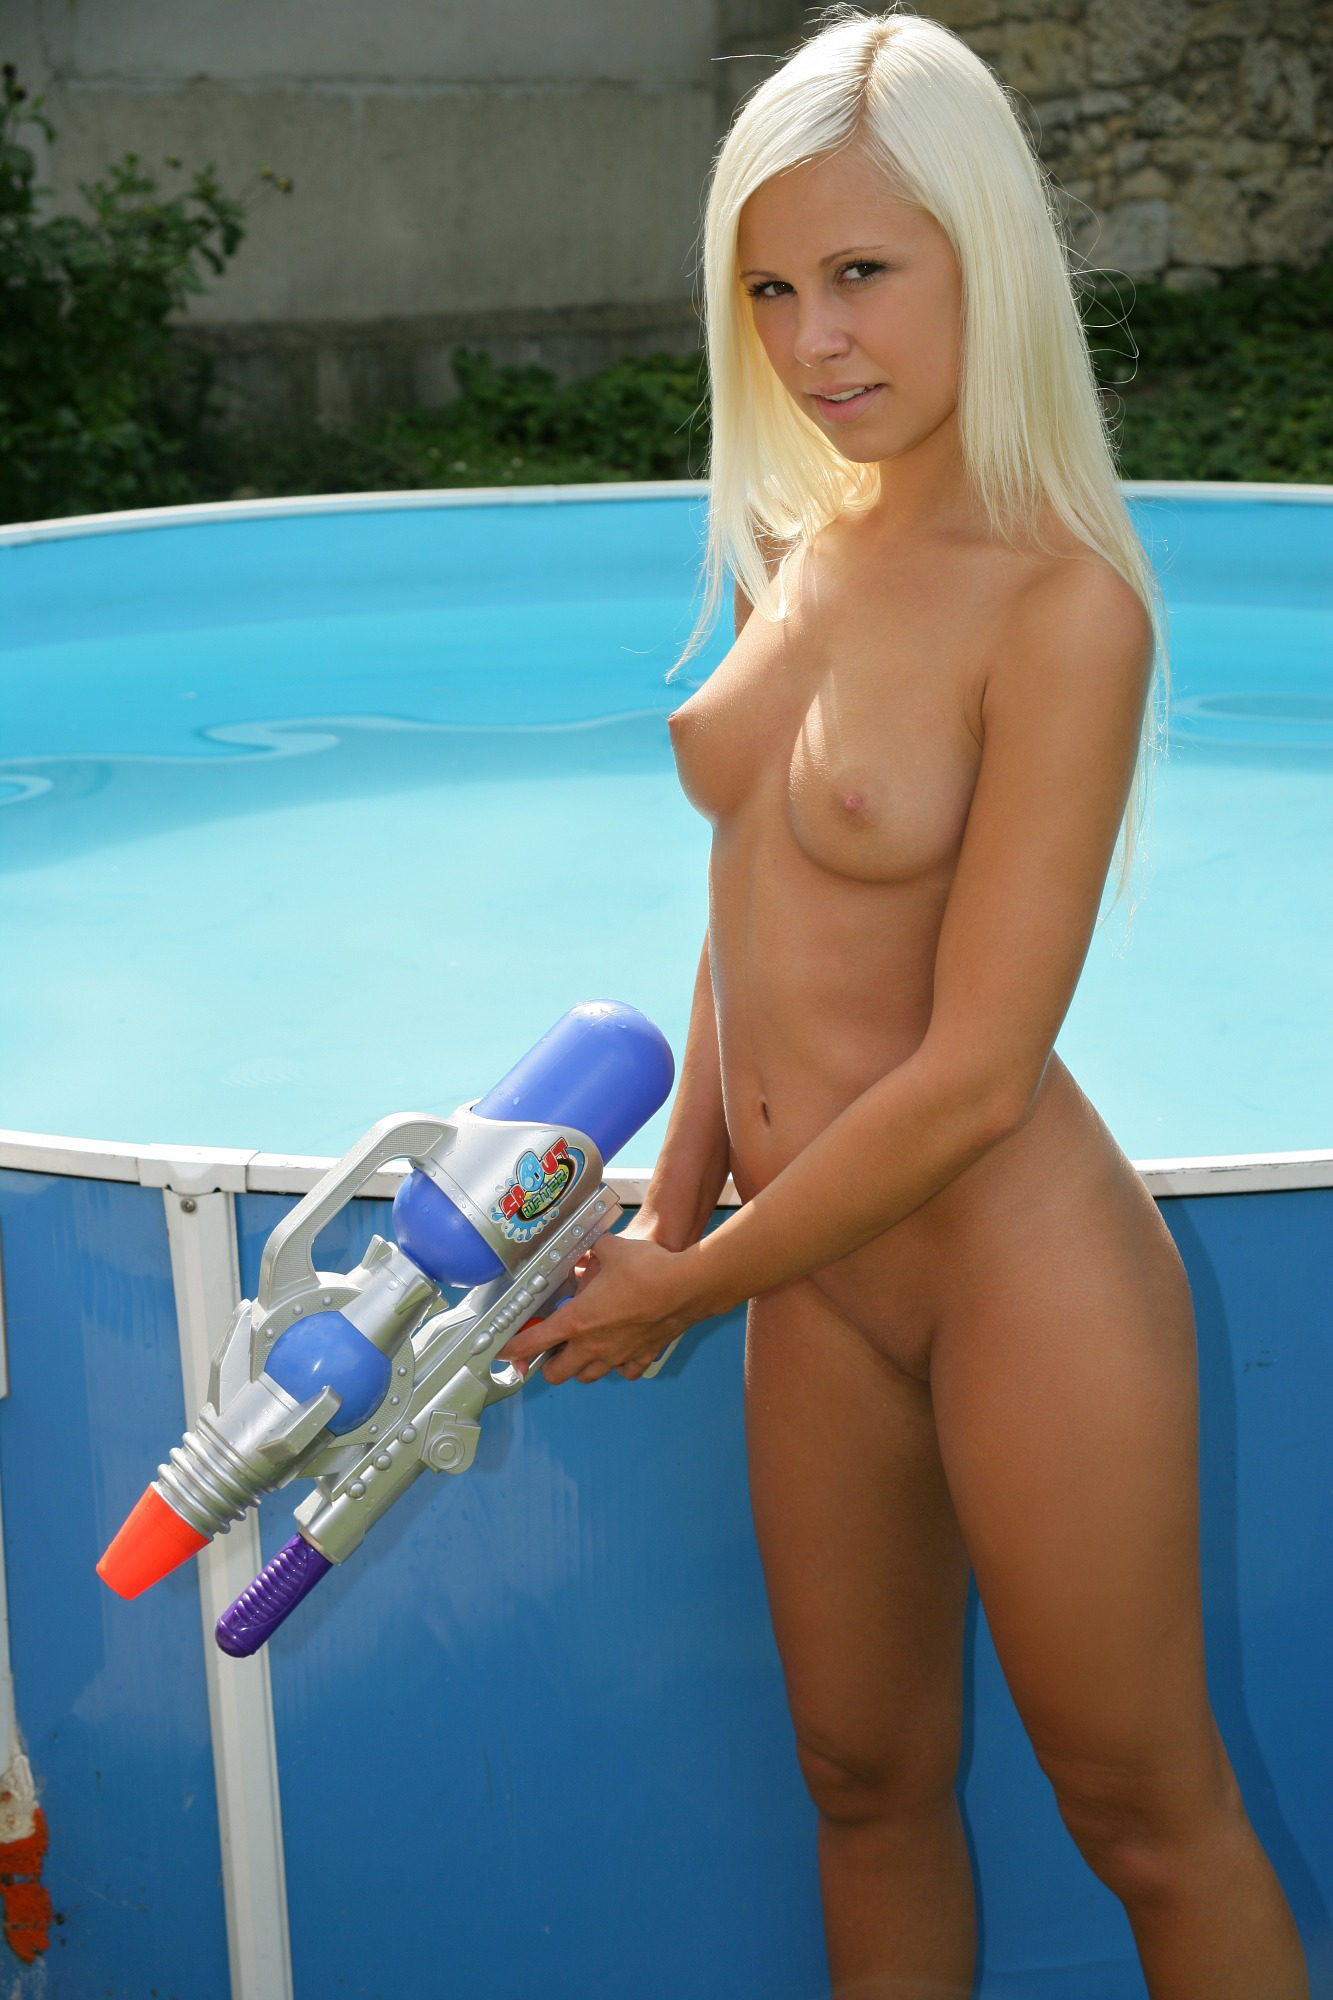 Blonde babe takes a naked swim in her pool - Movie Shark